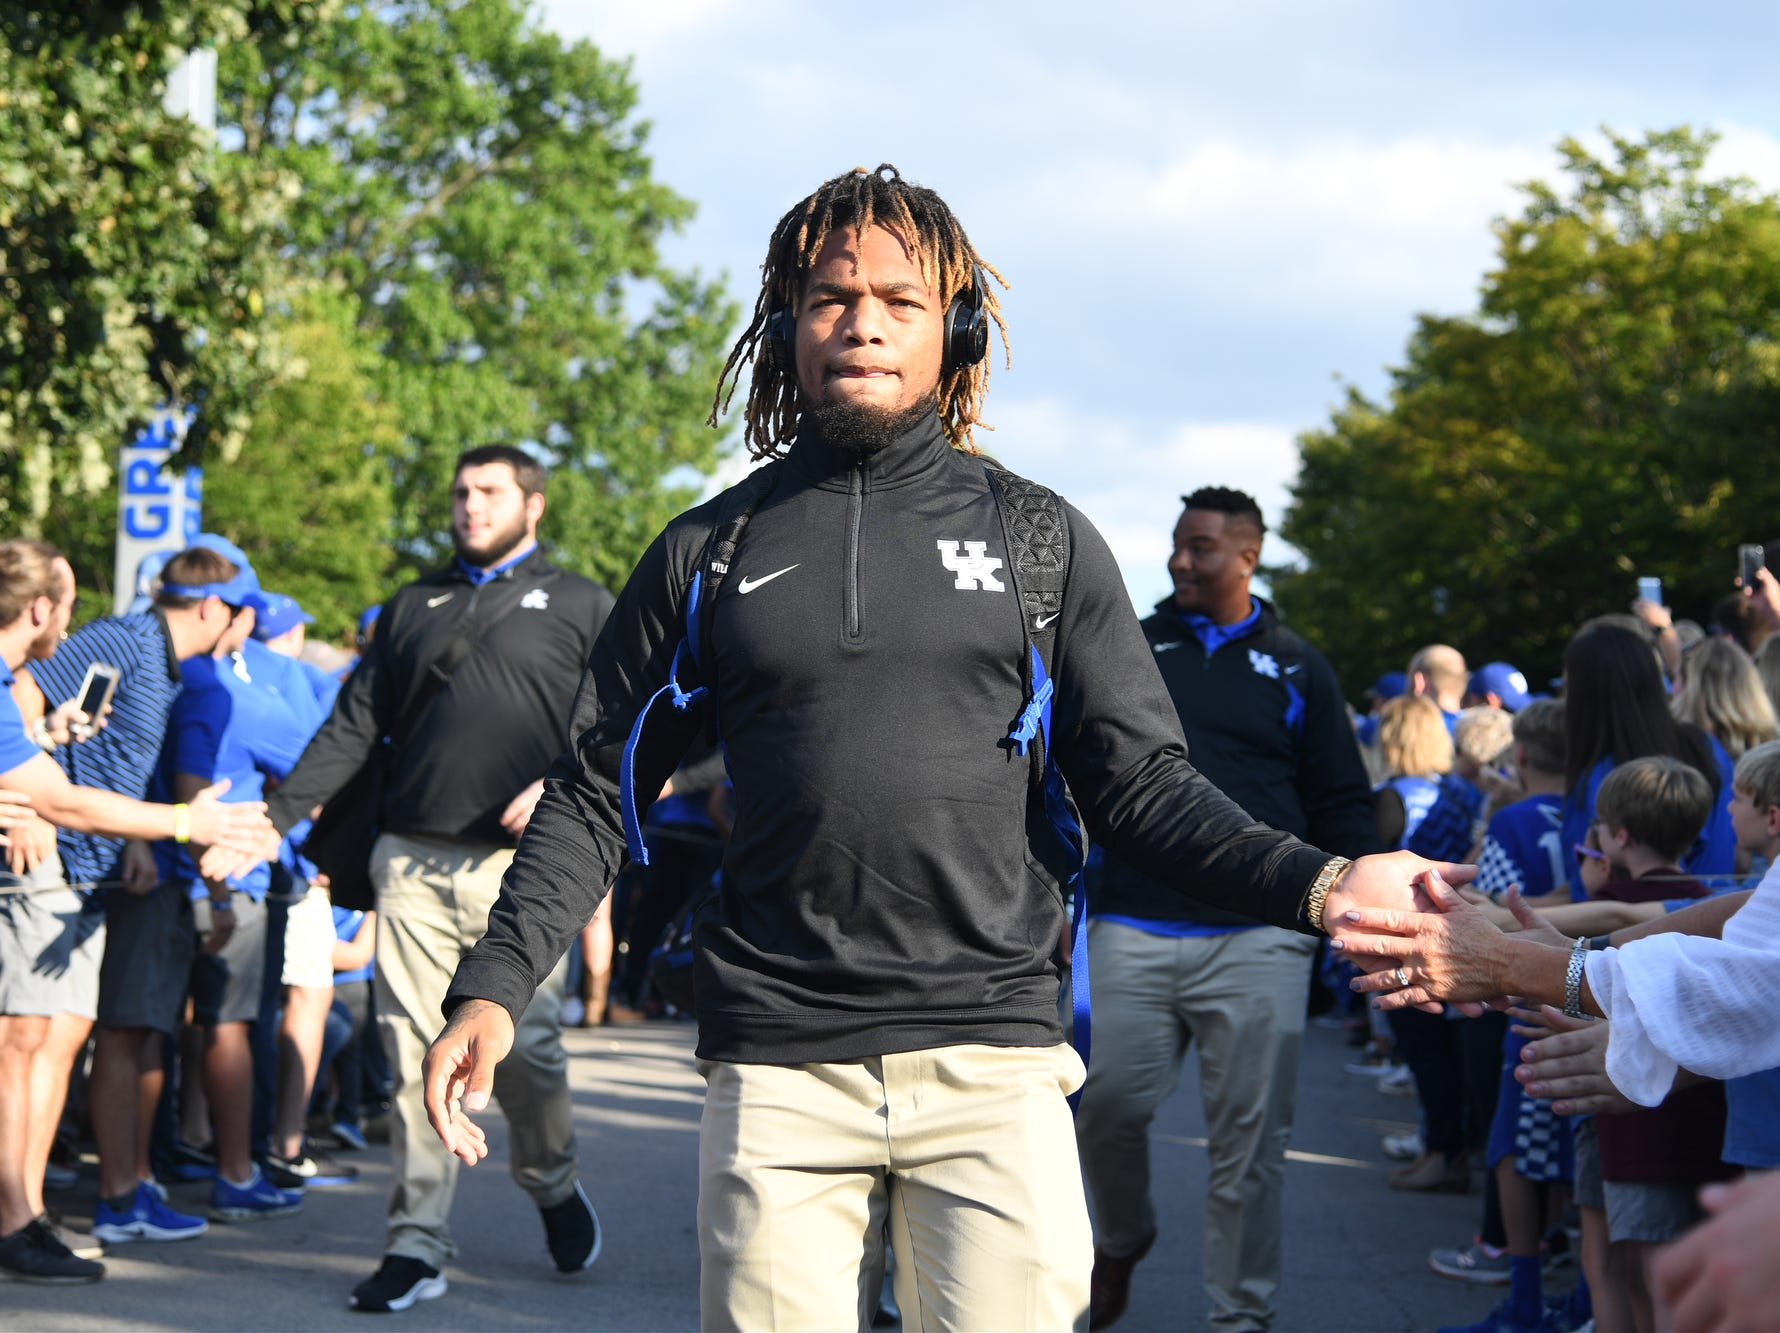 UK WR Lynn Bowden Jr. during the Cat Walk before the University of Kentucky football game against South Carolina at Kroger Field in Lexington, Kentucky on Saturday, September 29, 2018.